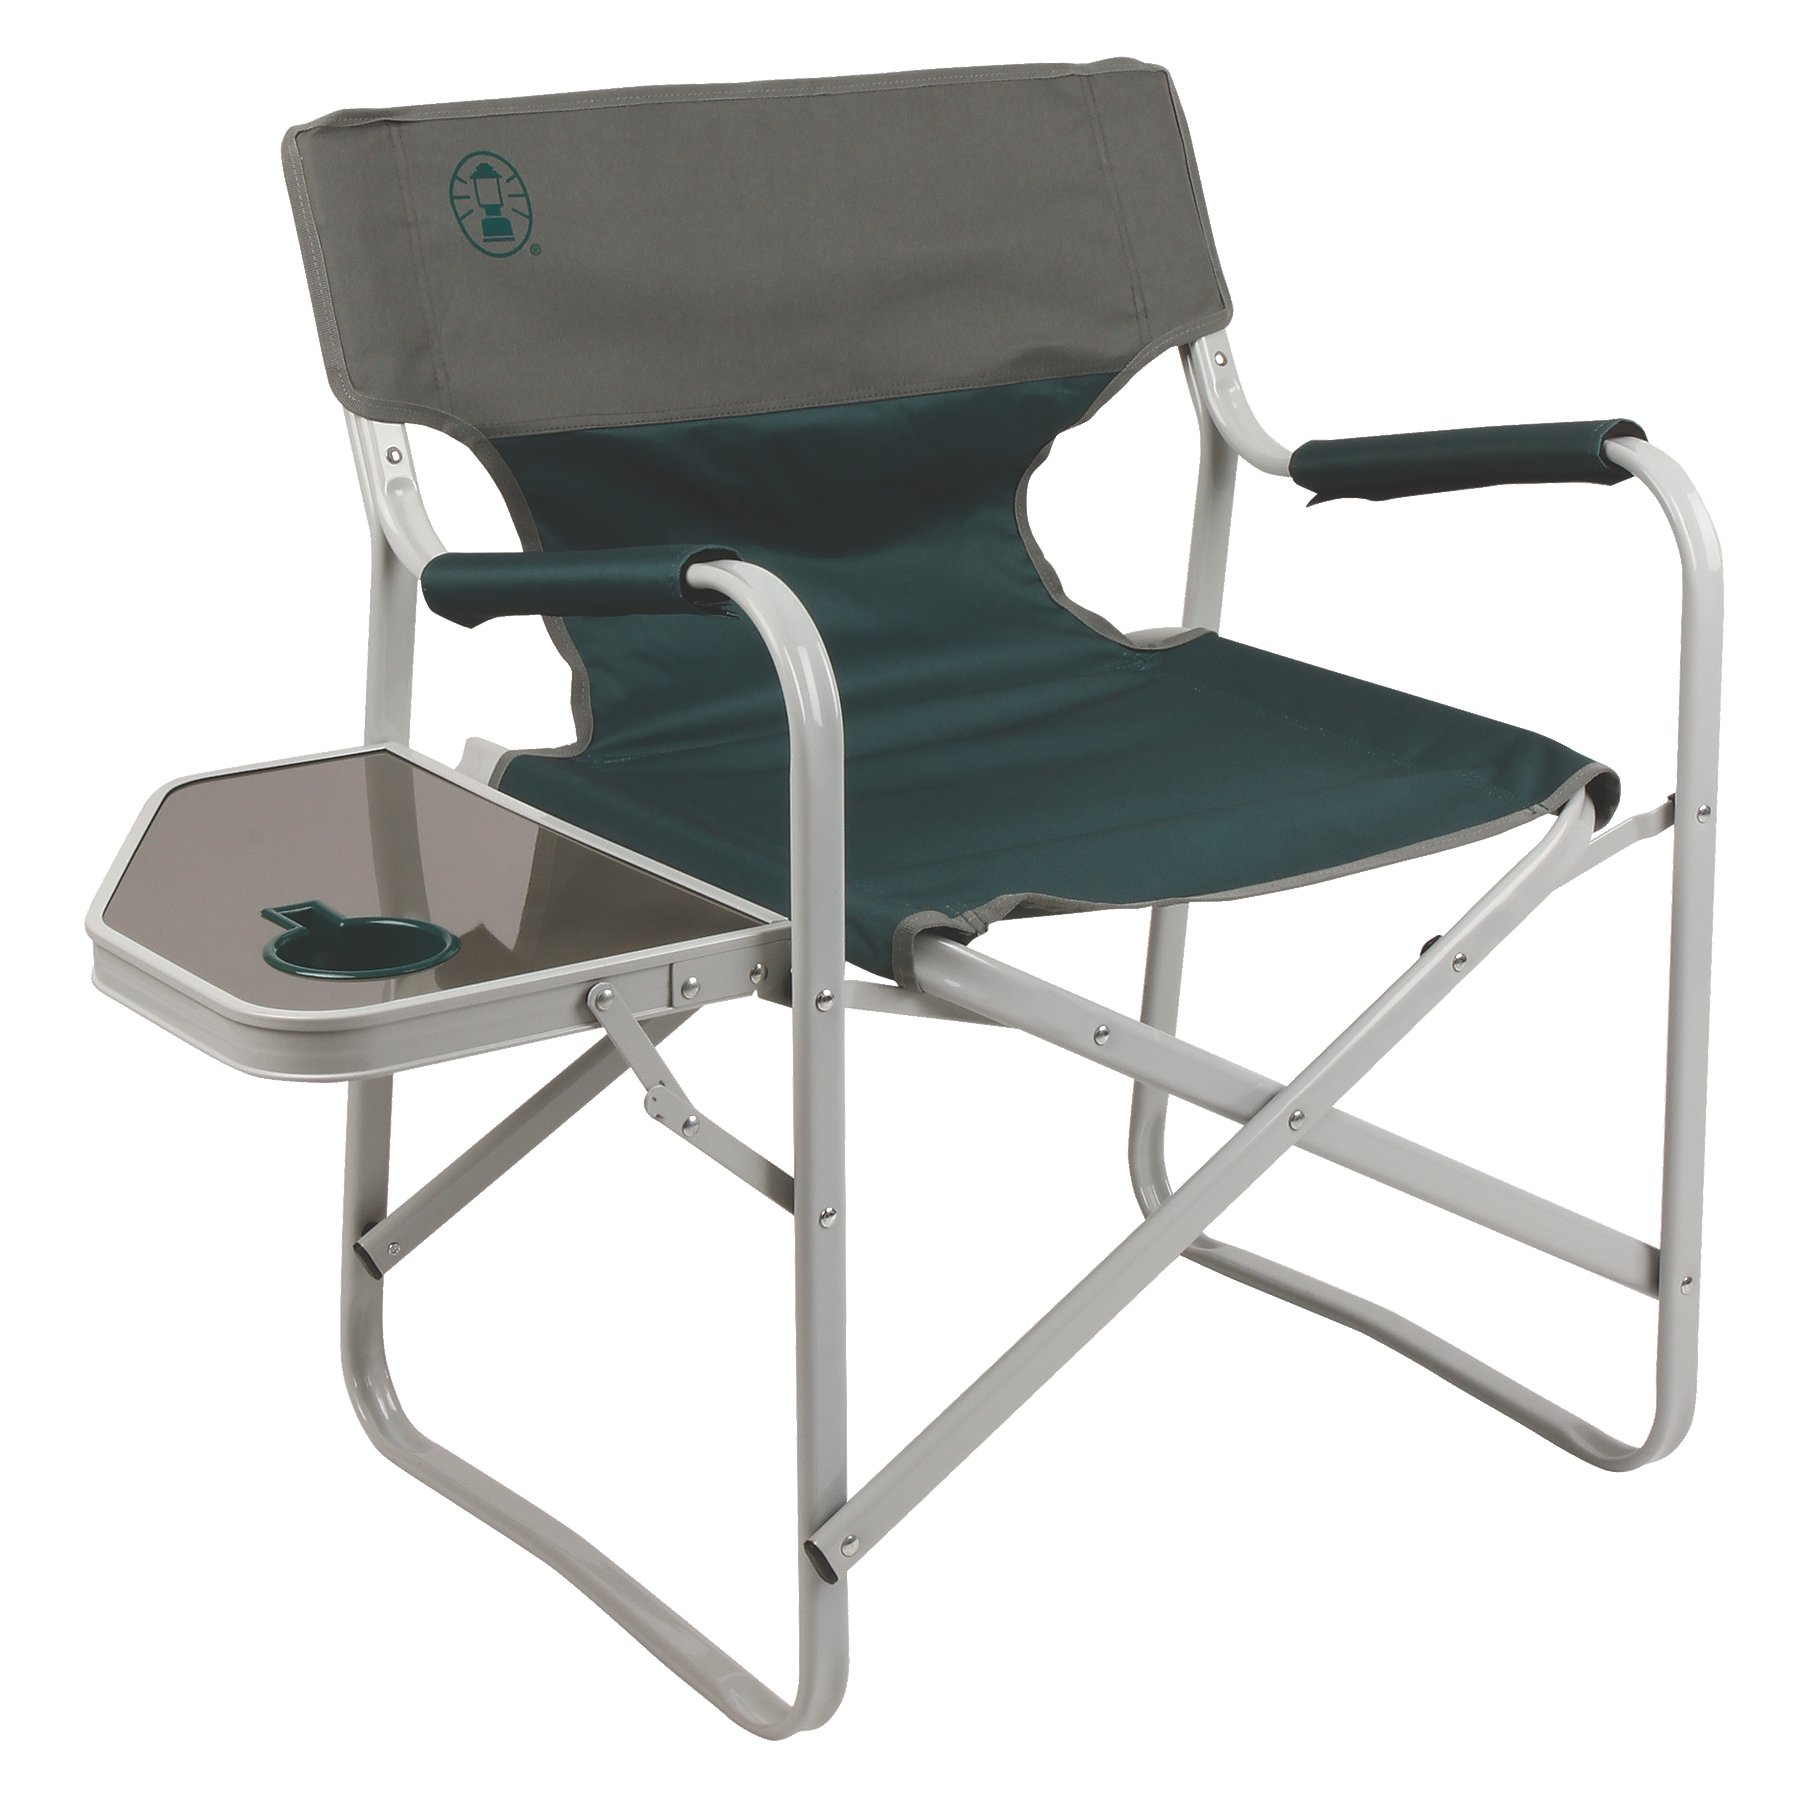 Coleman Folding Camp Chair | Outpost Elite Portable Deck Chair with Side Table & Cup Holder